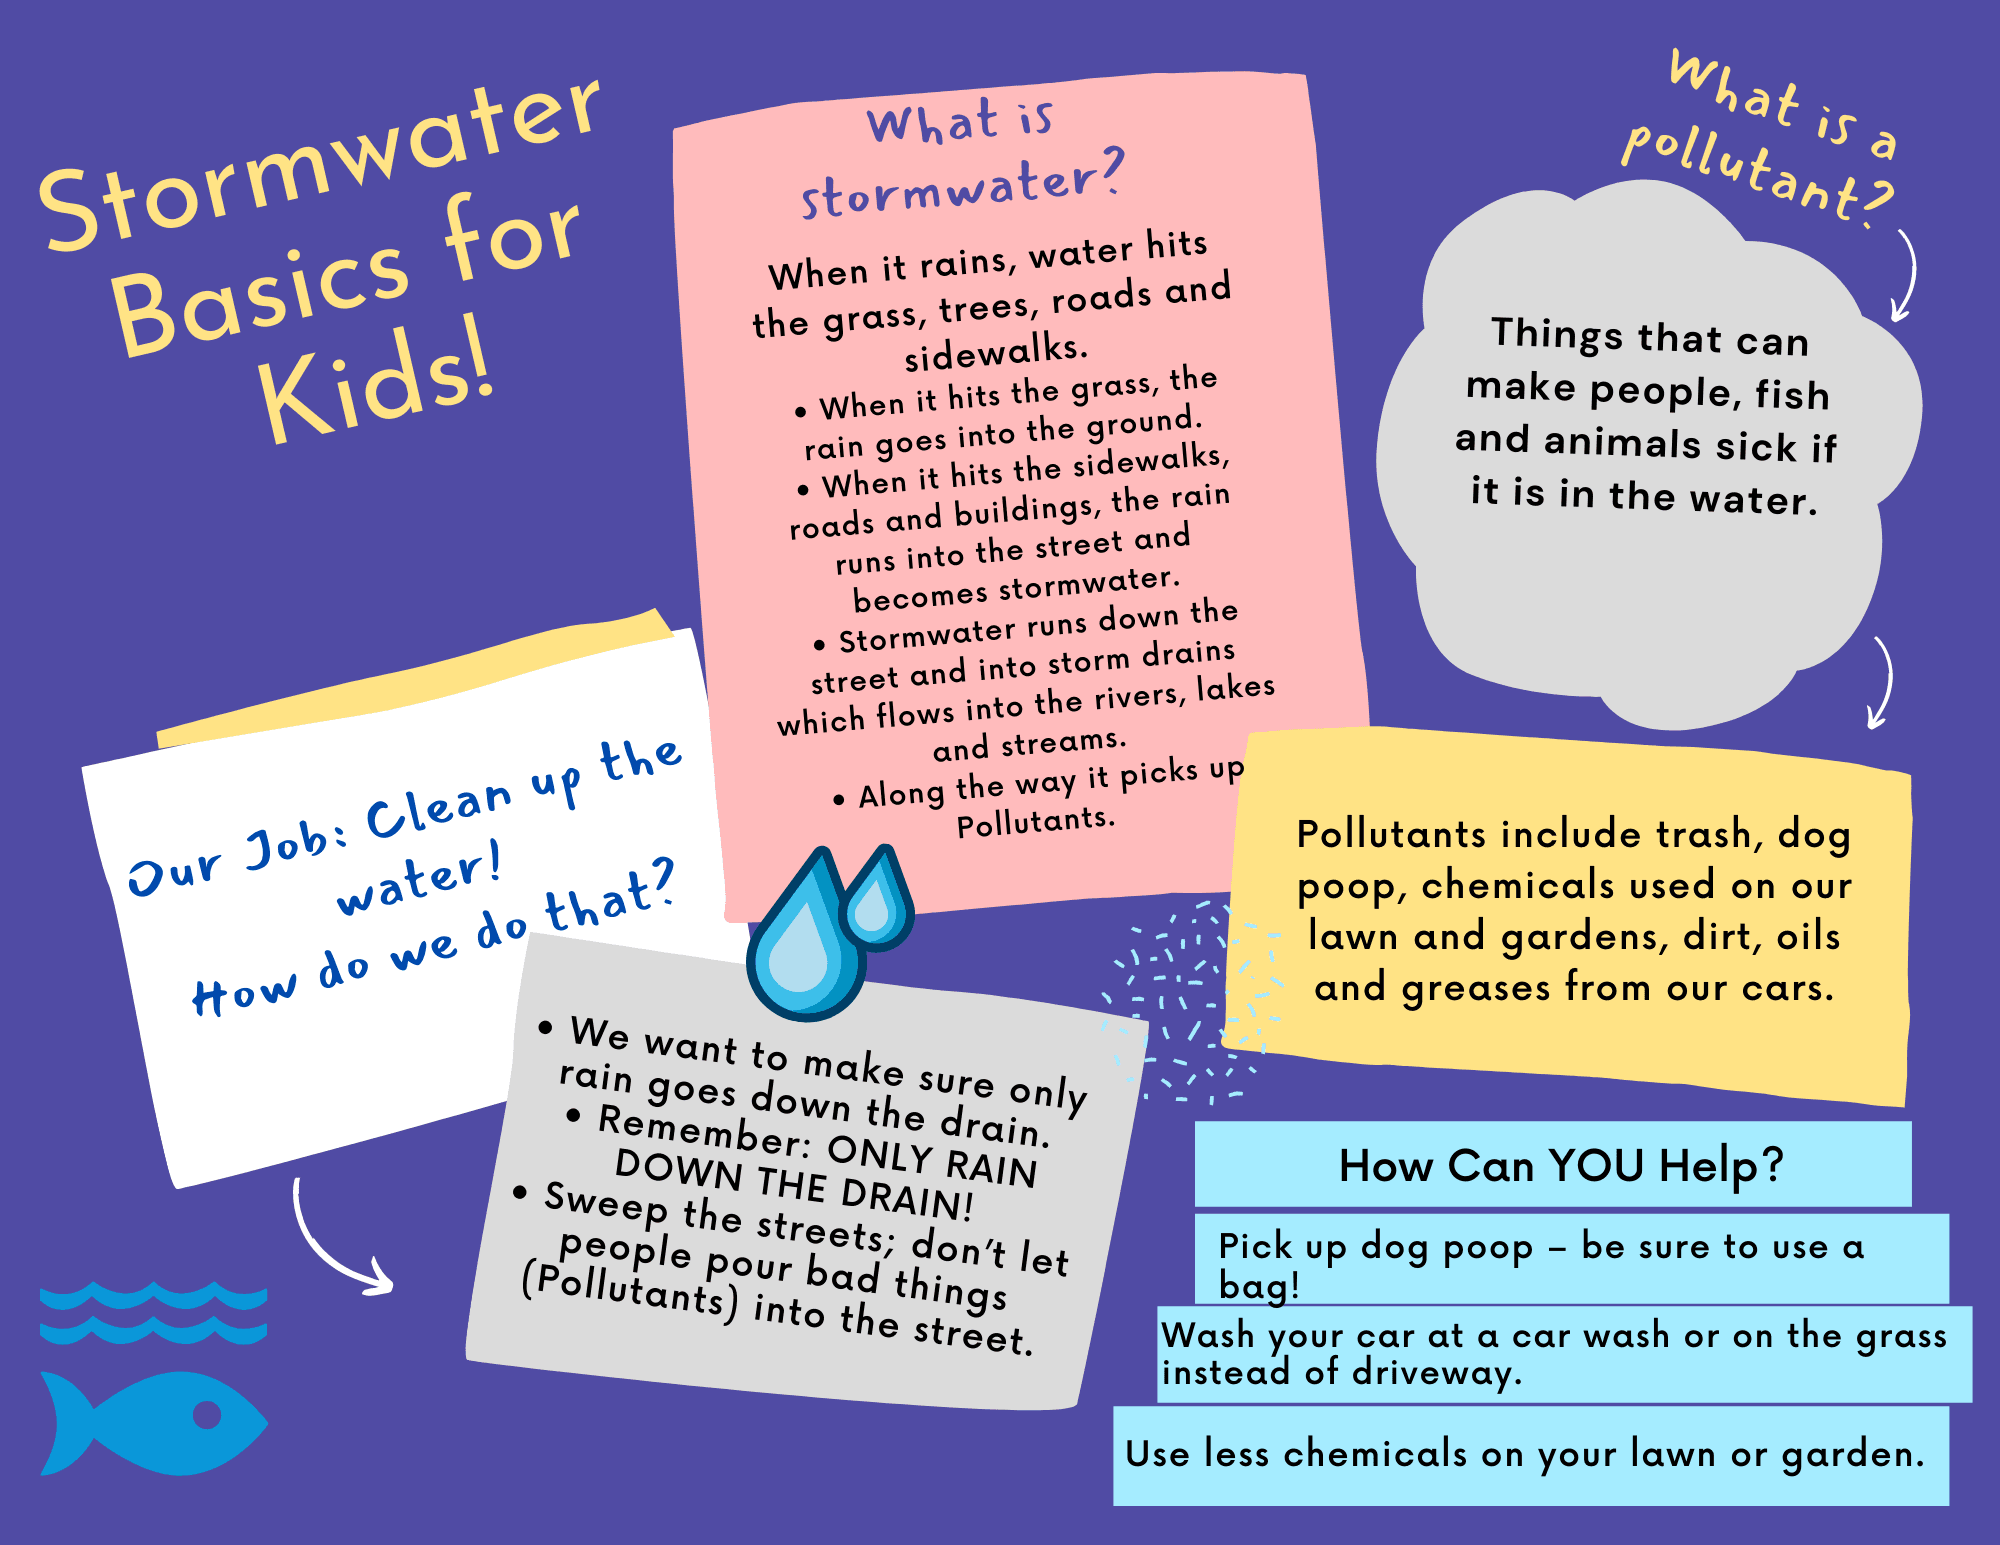 Stormwater Basics for Kids